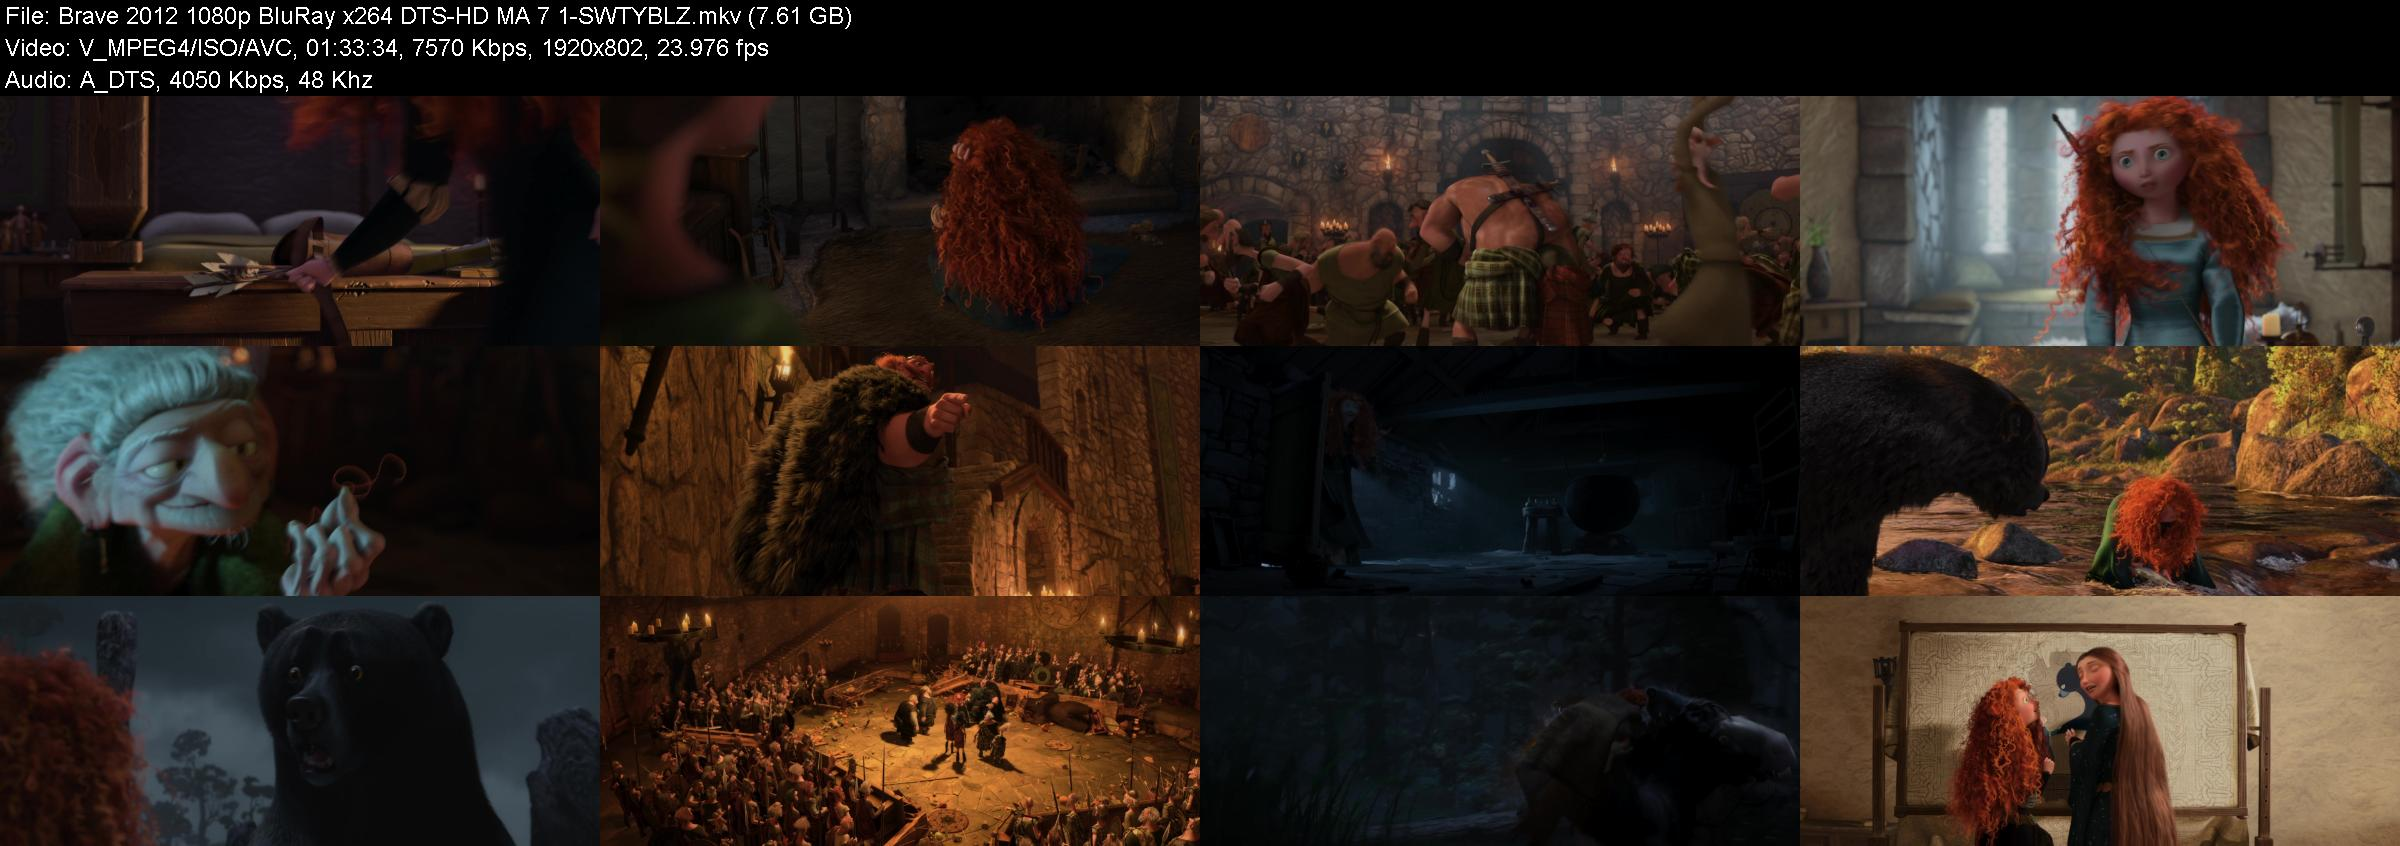 Brave 2012 1080p BluRay x264 DTS-HD MA 7 1-SWTYBLZ